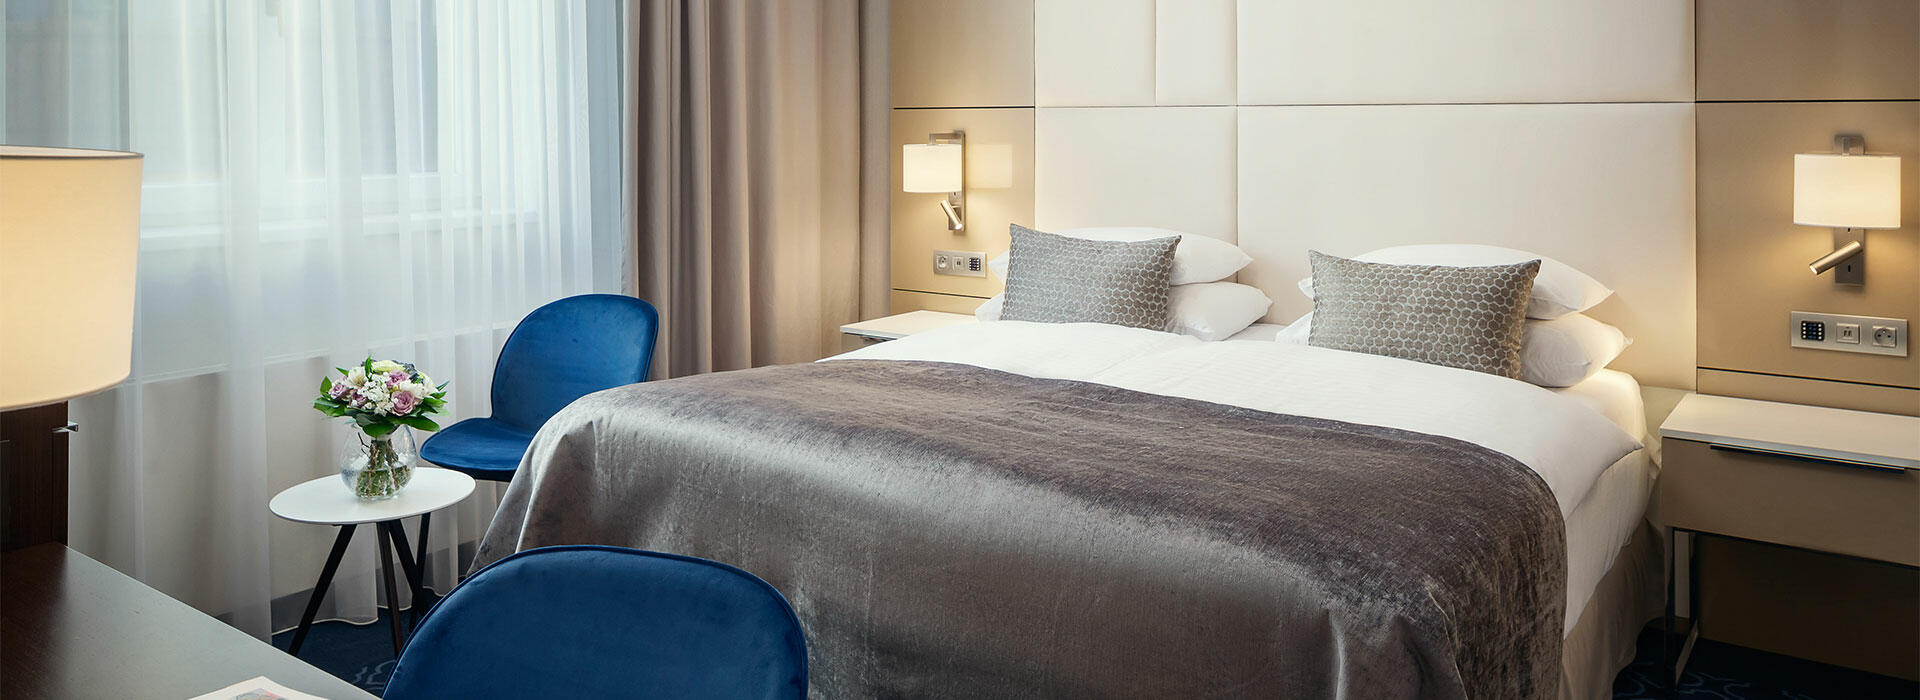 Rooms at Hotel KINGS COURT in Prague